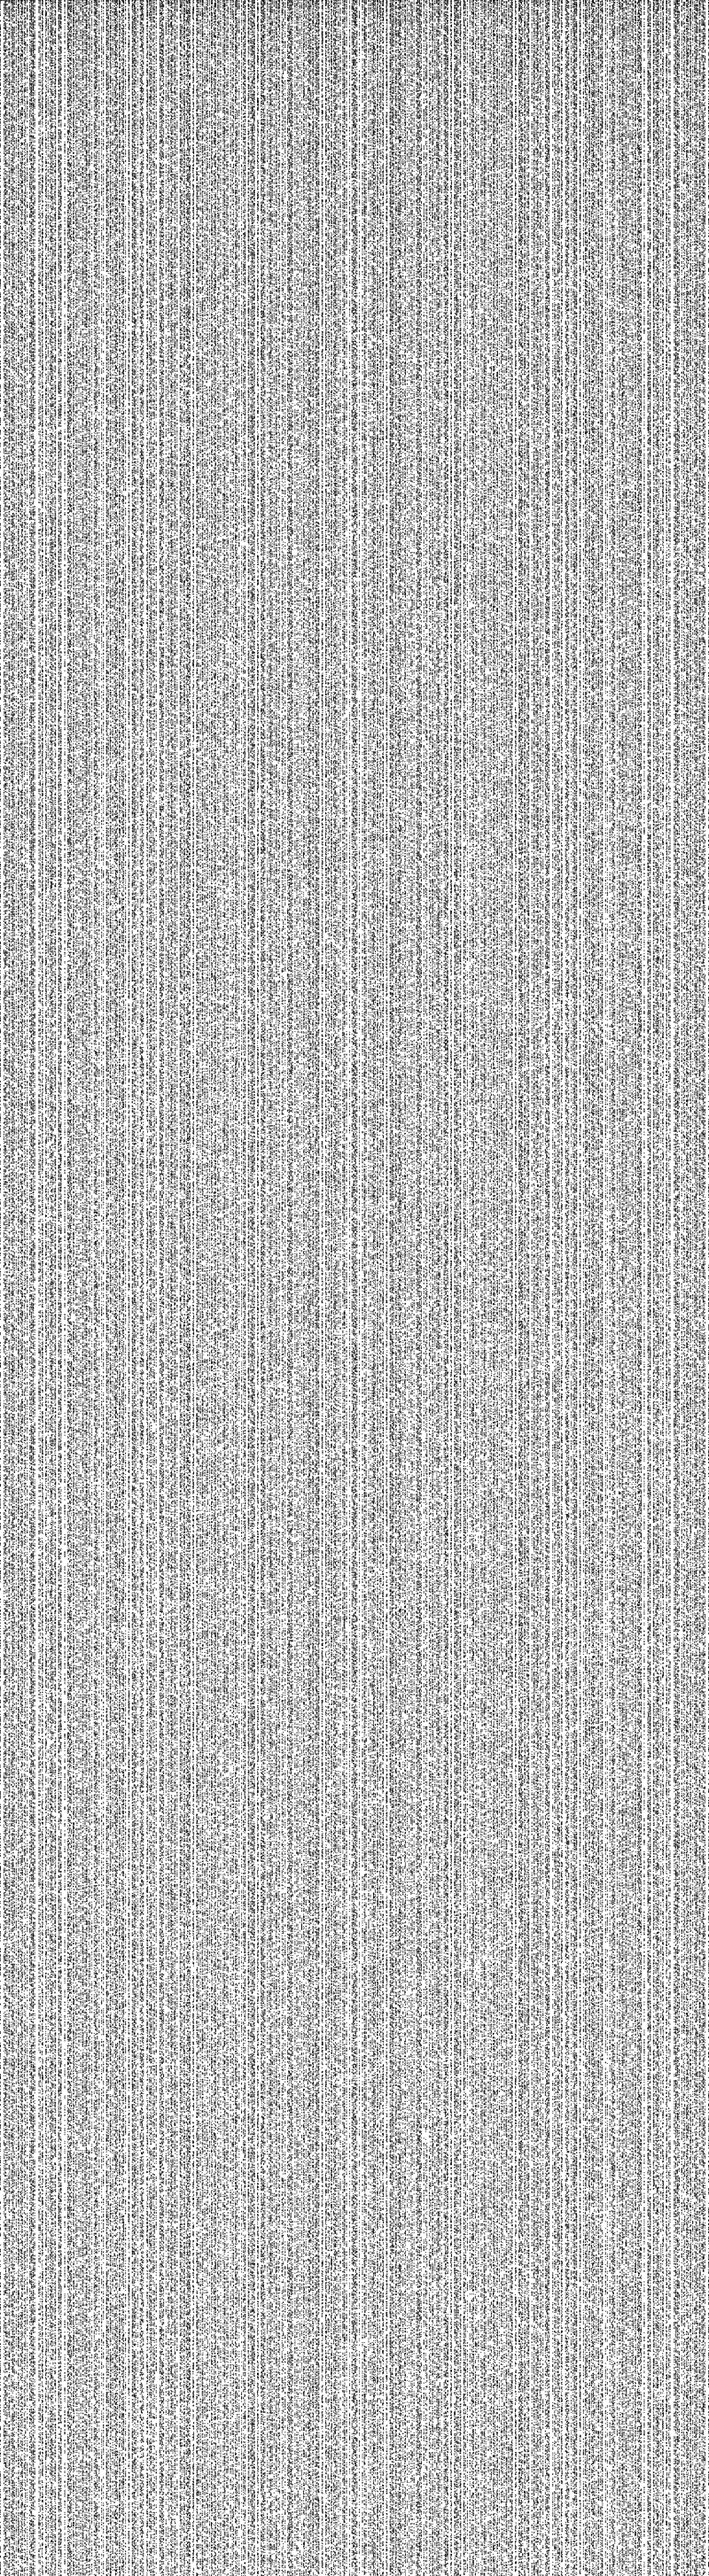 Primes - distribution - up to 19 primorial.png